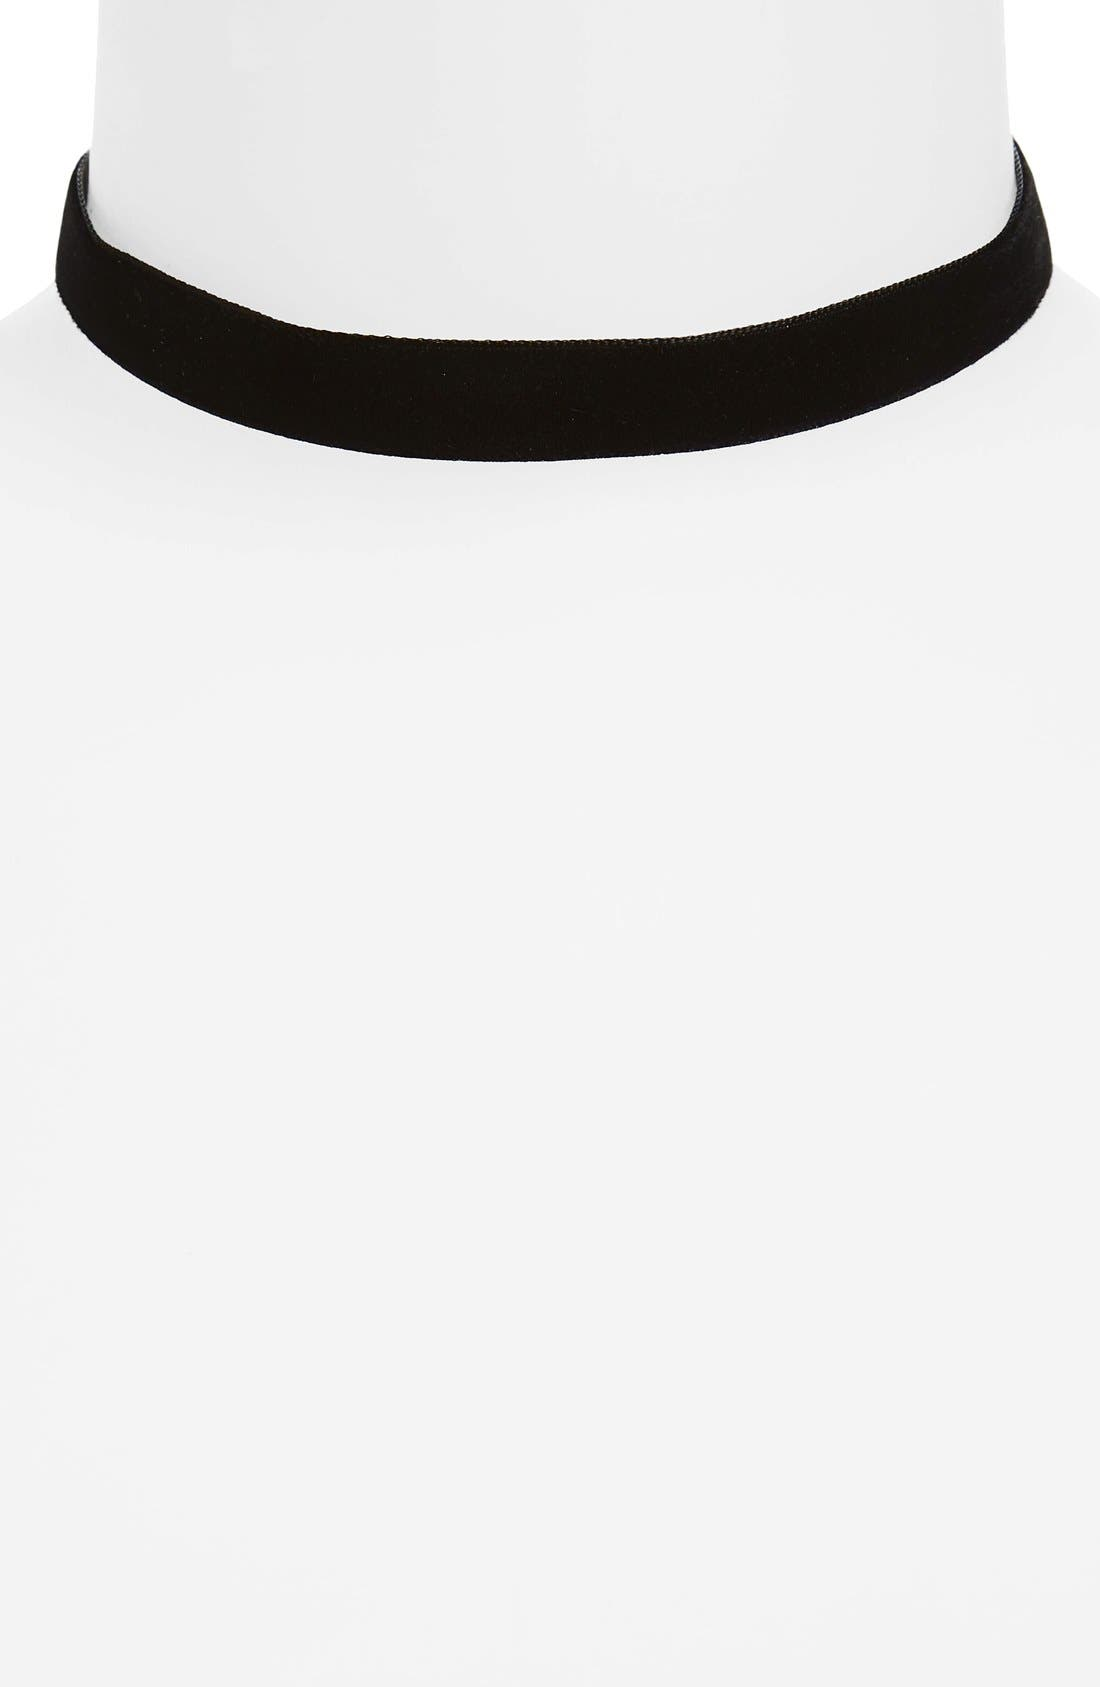 Velvet Choker,                         Main,                         color, 001